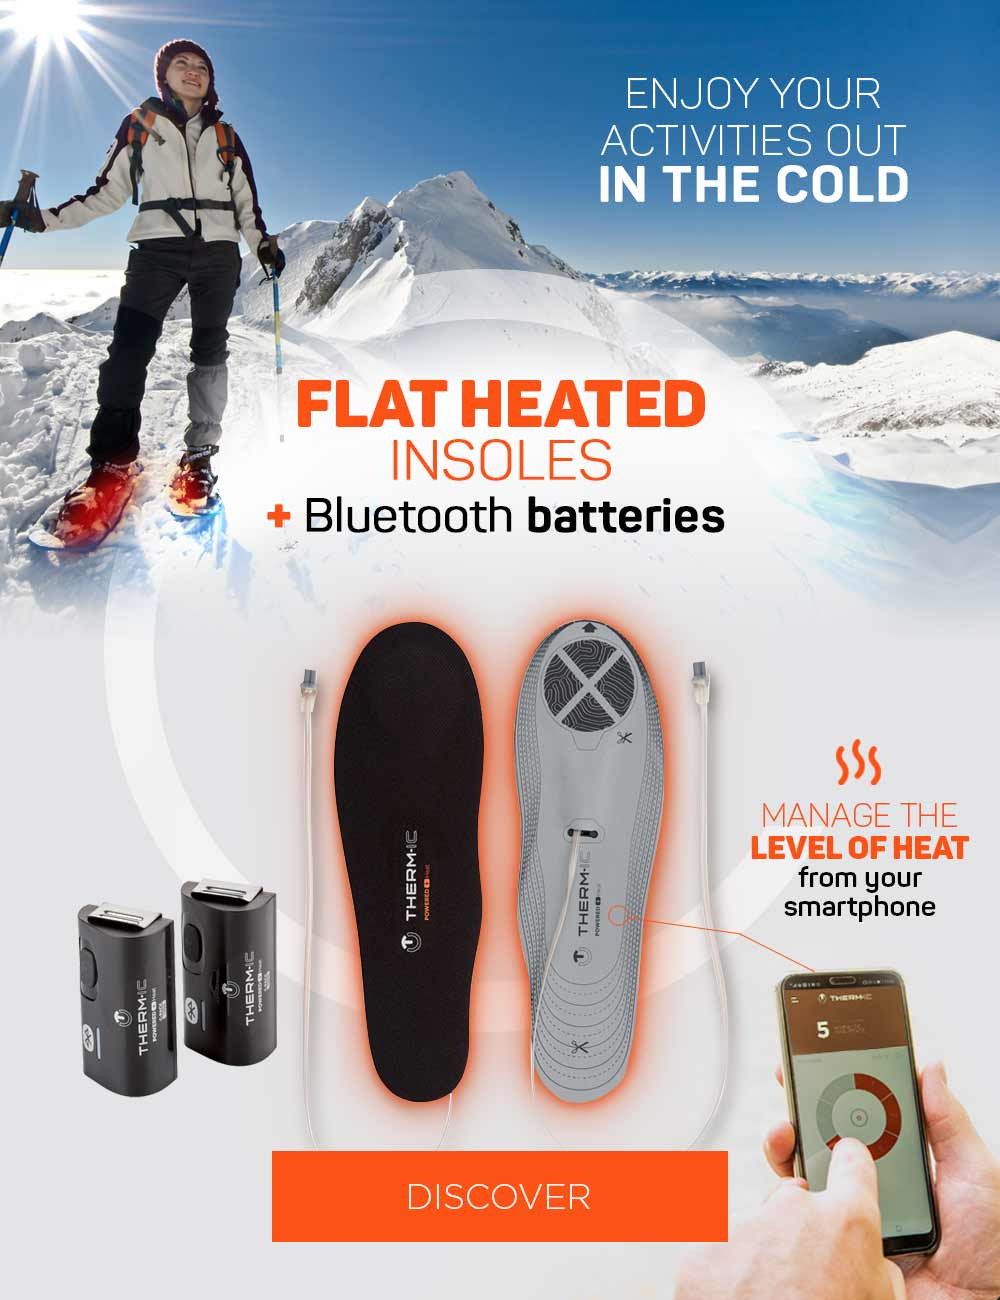 Say goodbye to frozen foot thanks to our heated insoles